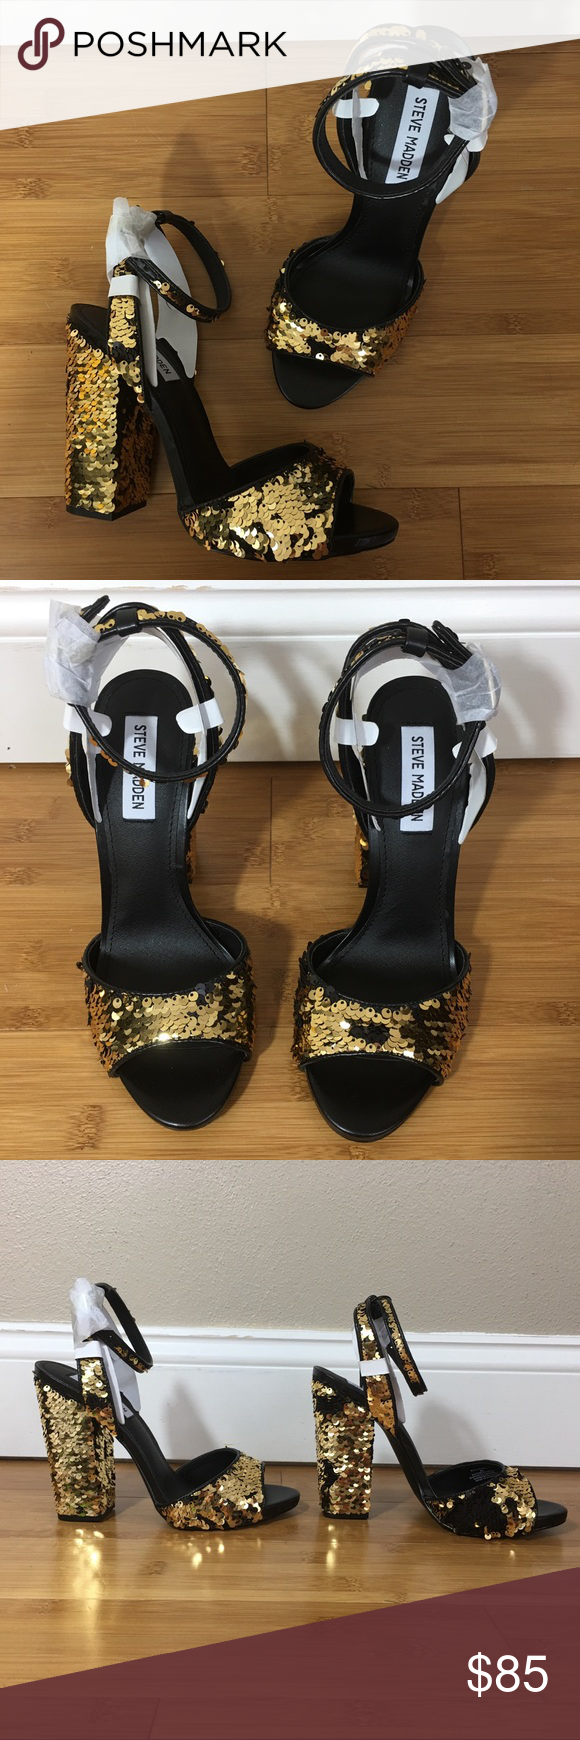 273d1df8c4f Steve Madden Ritzy Sandal These shoes are brand new with box. Black ...